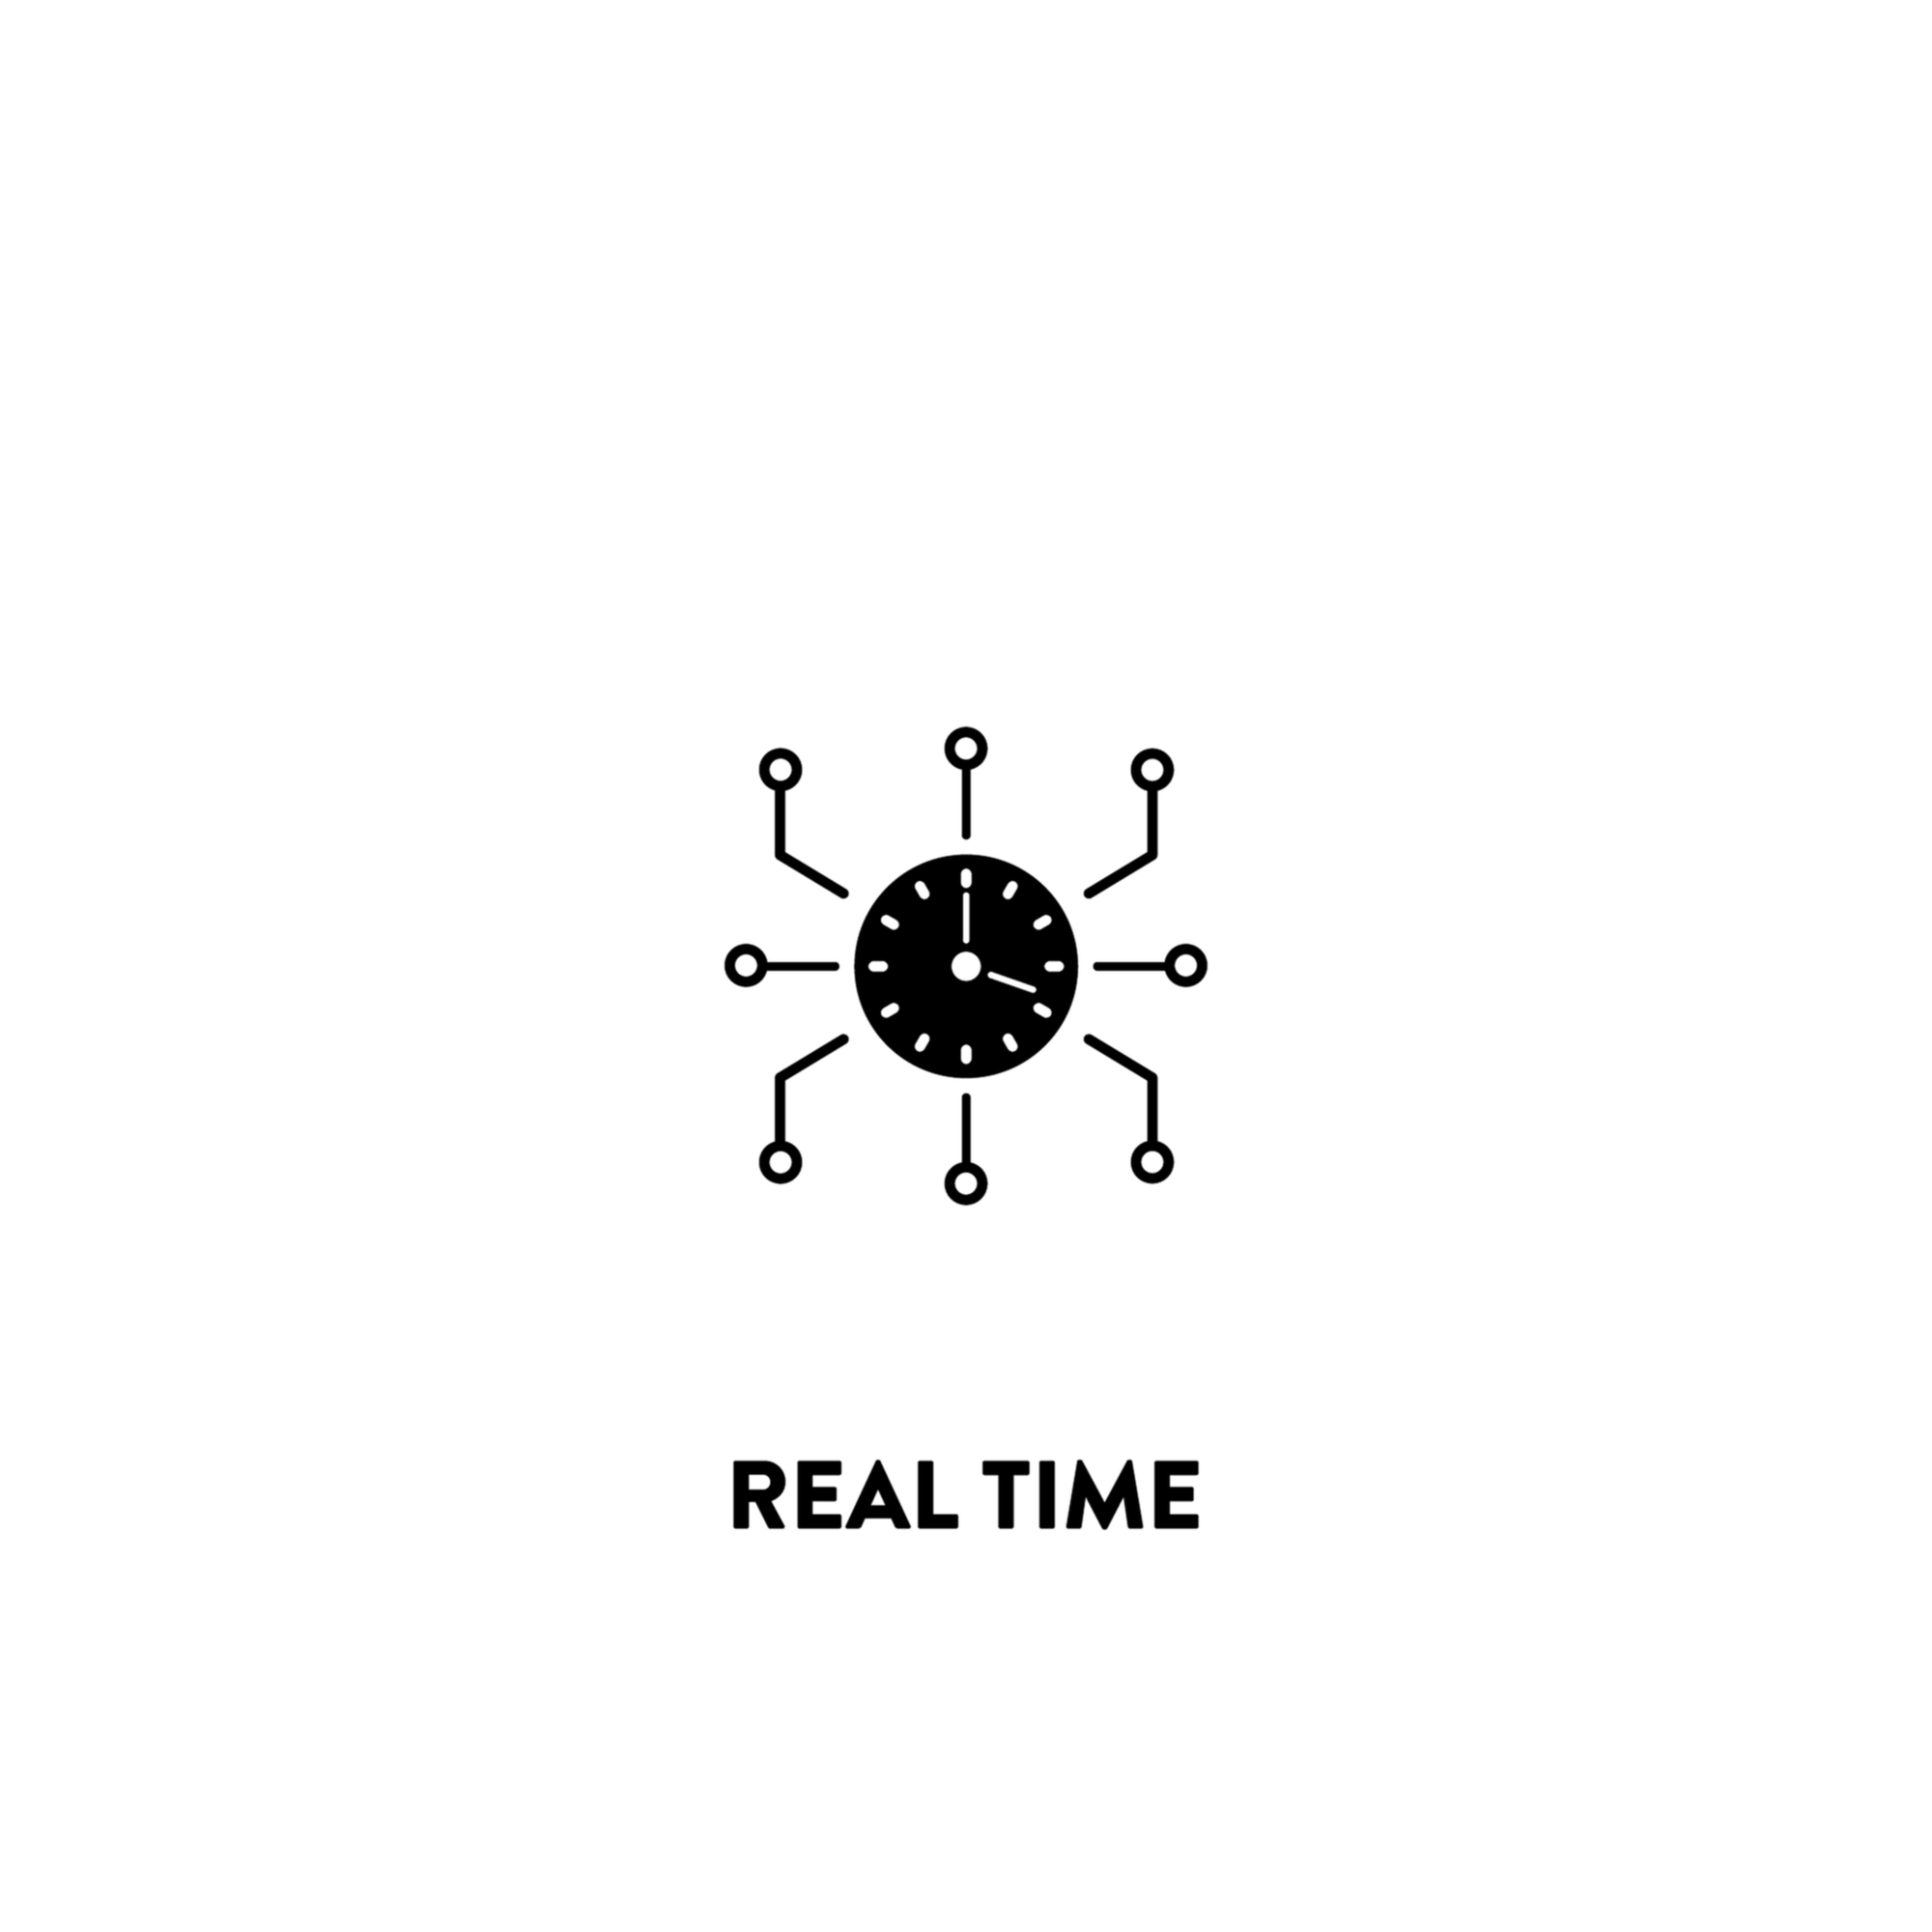 a guide on successful real time marketing